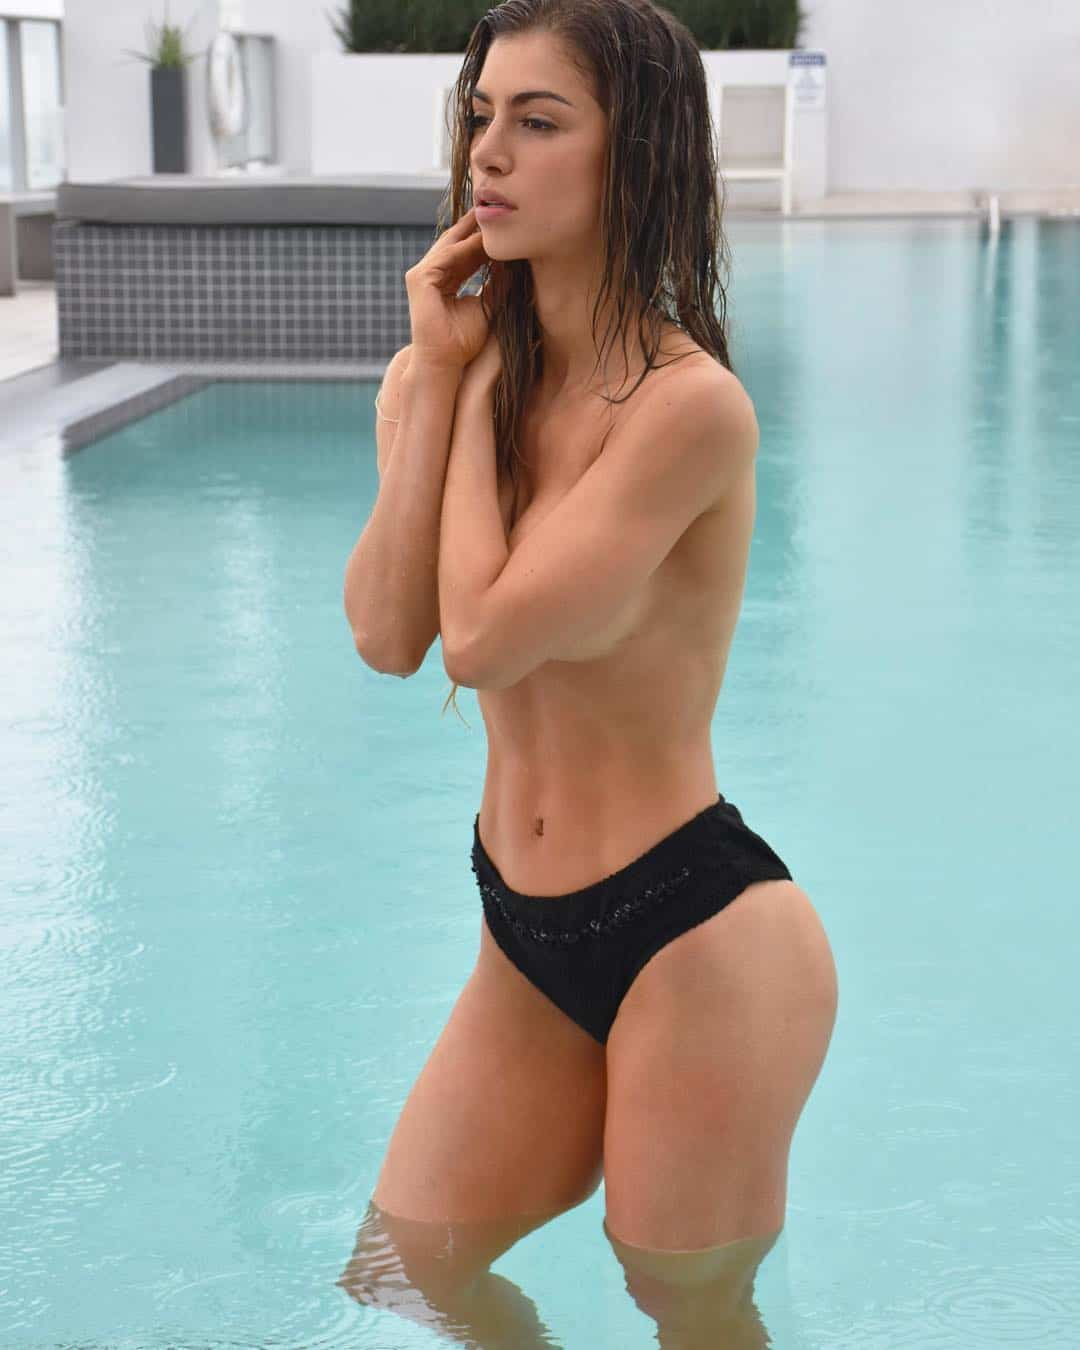 Anllela Sagra topless at the pool